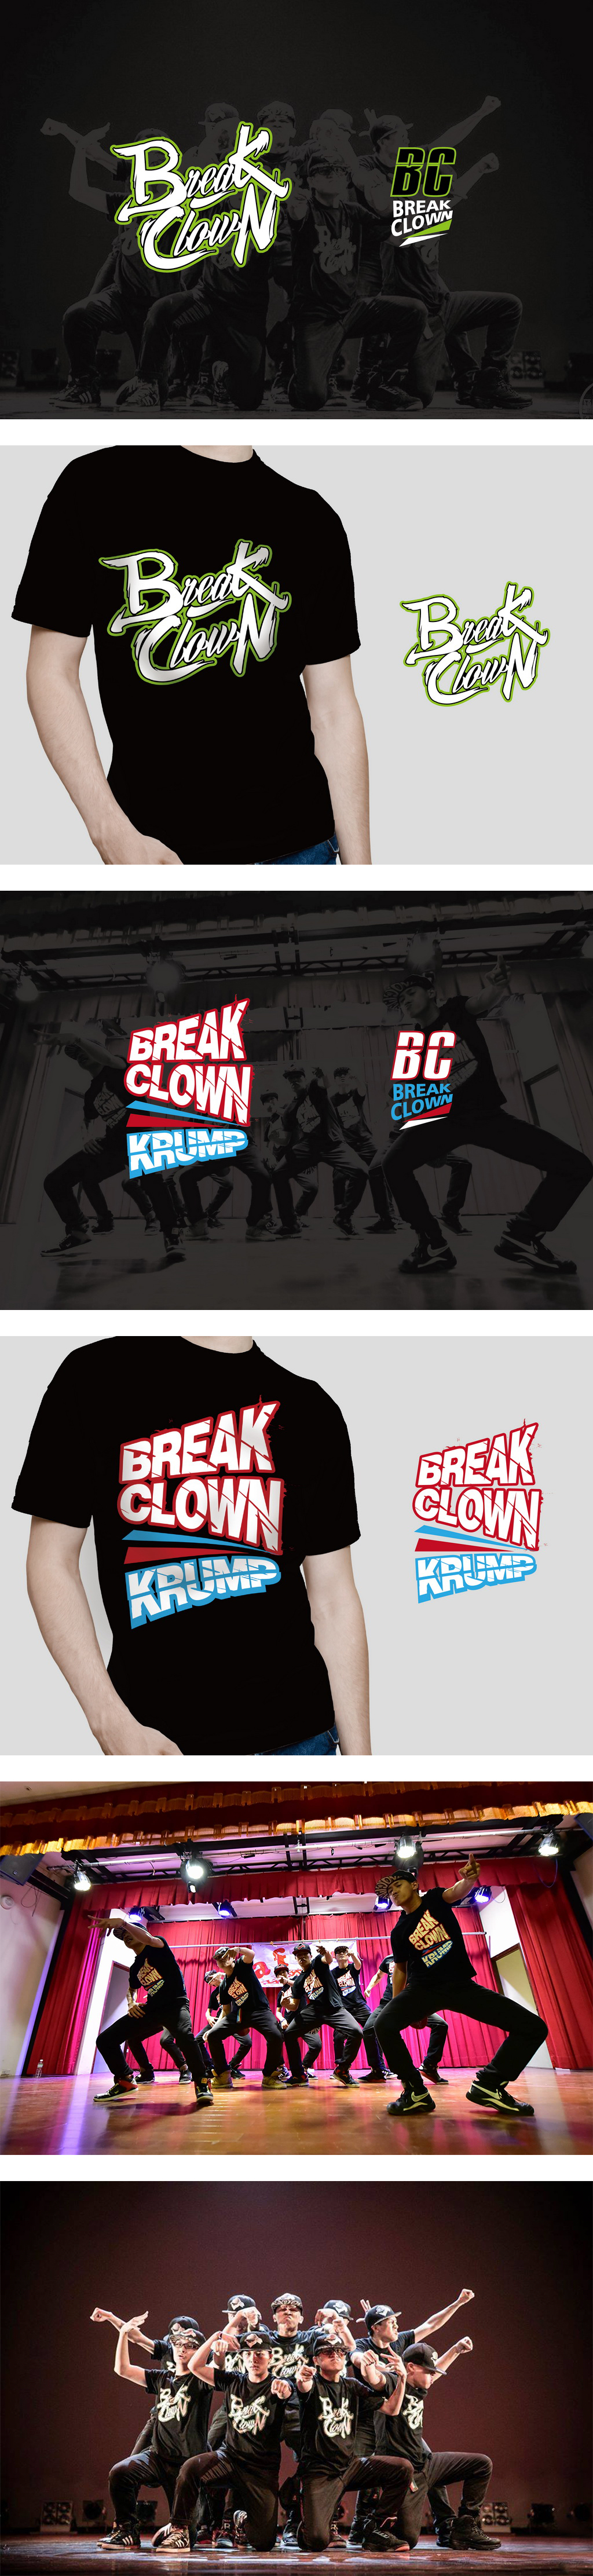 BREAK-CLOWN-台大盃比賽T-SHIRT